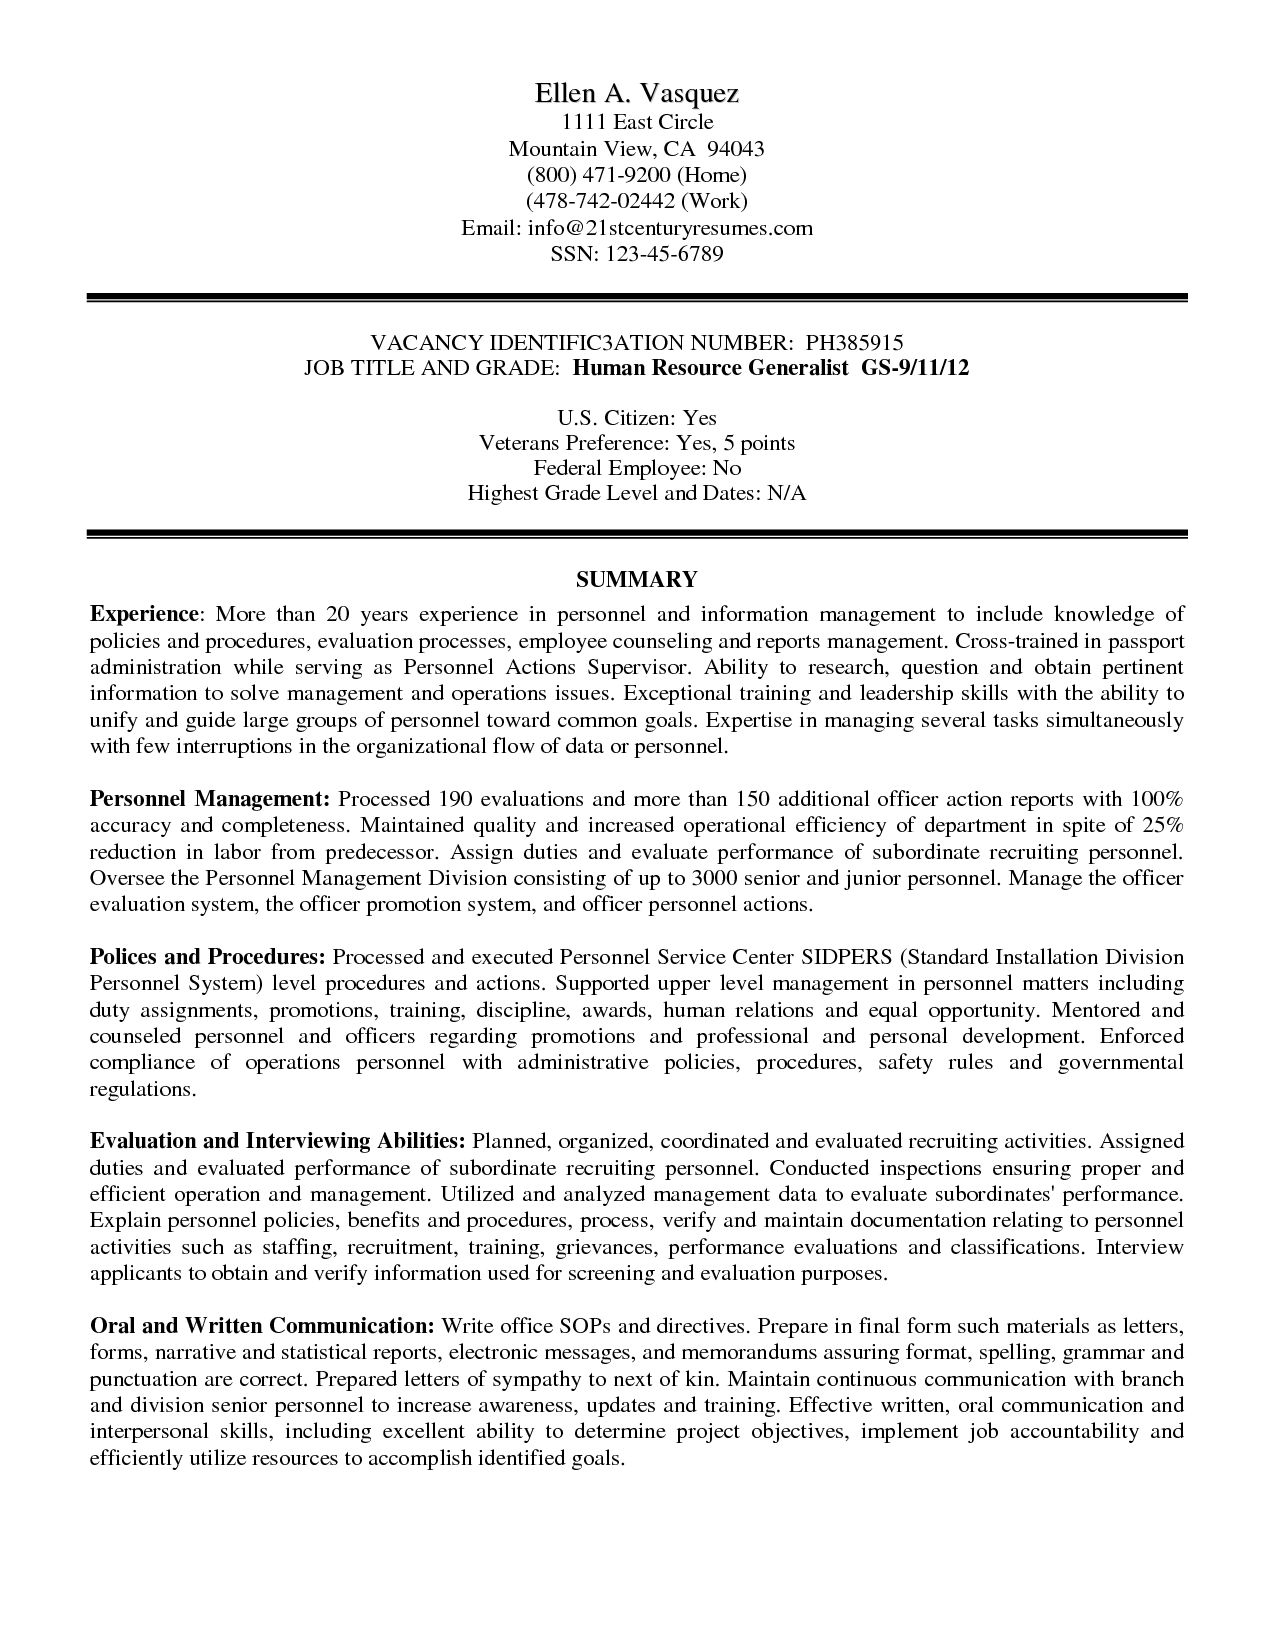 Military Civilian Resume Transition Federal Templates View Sample